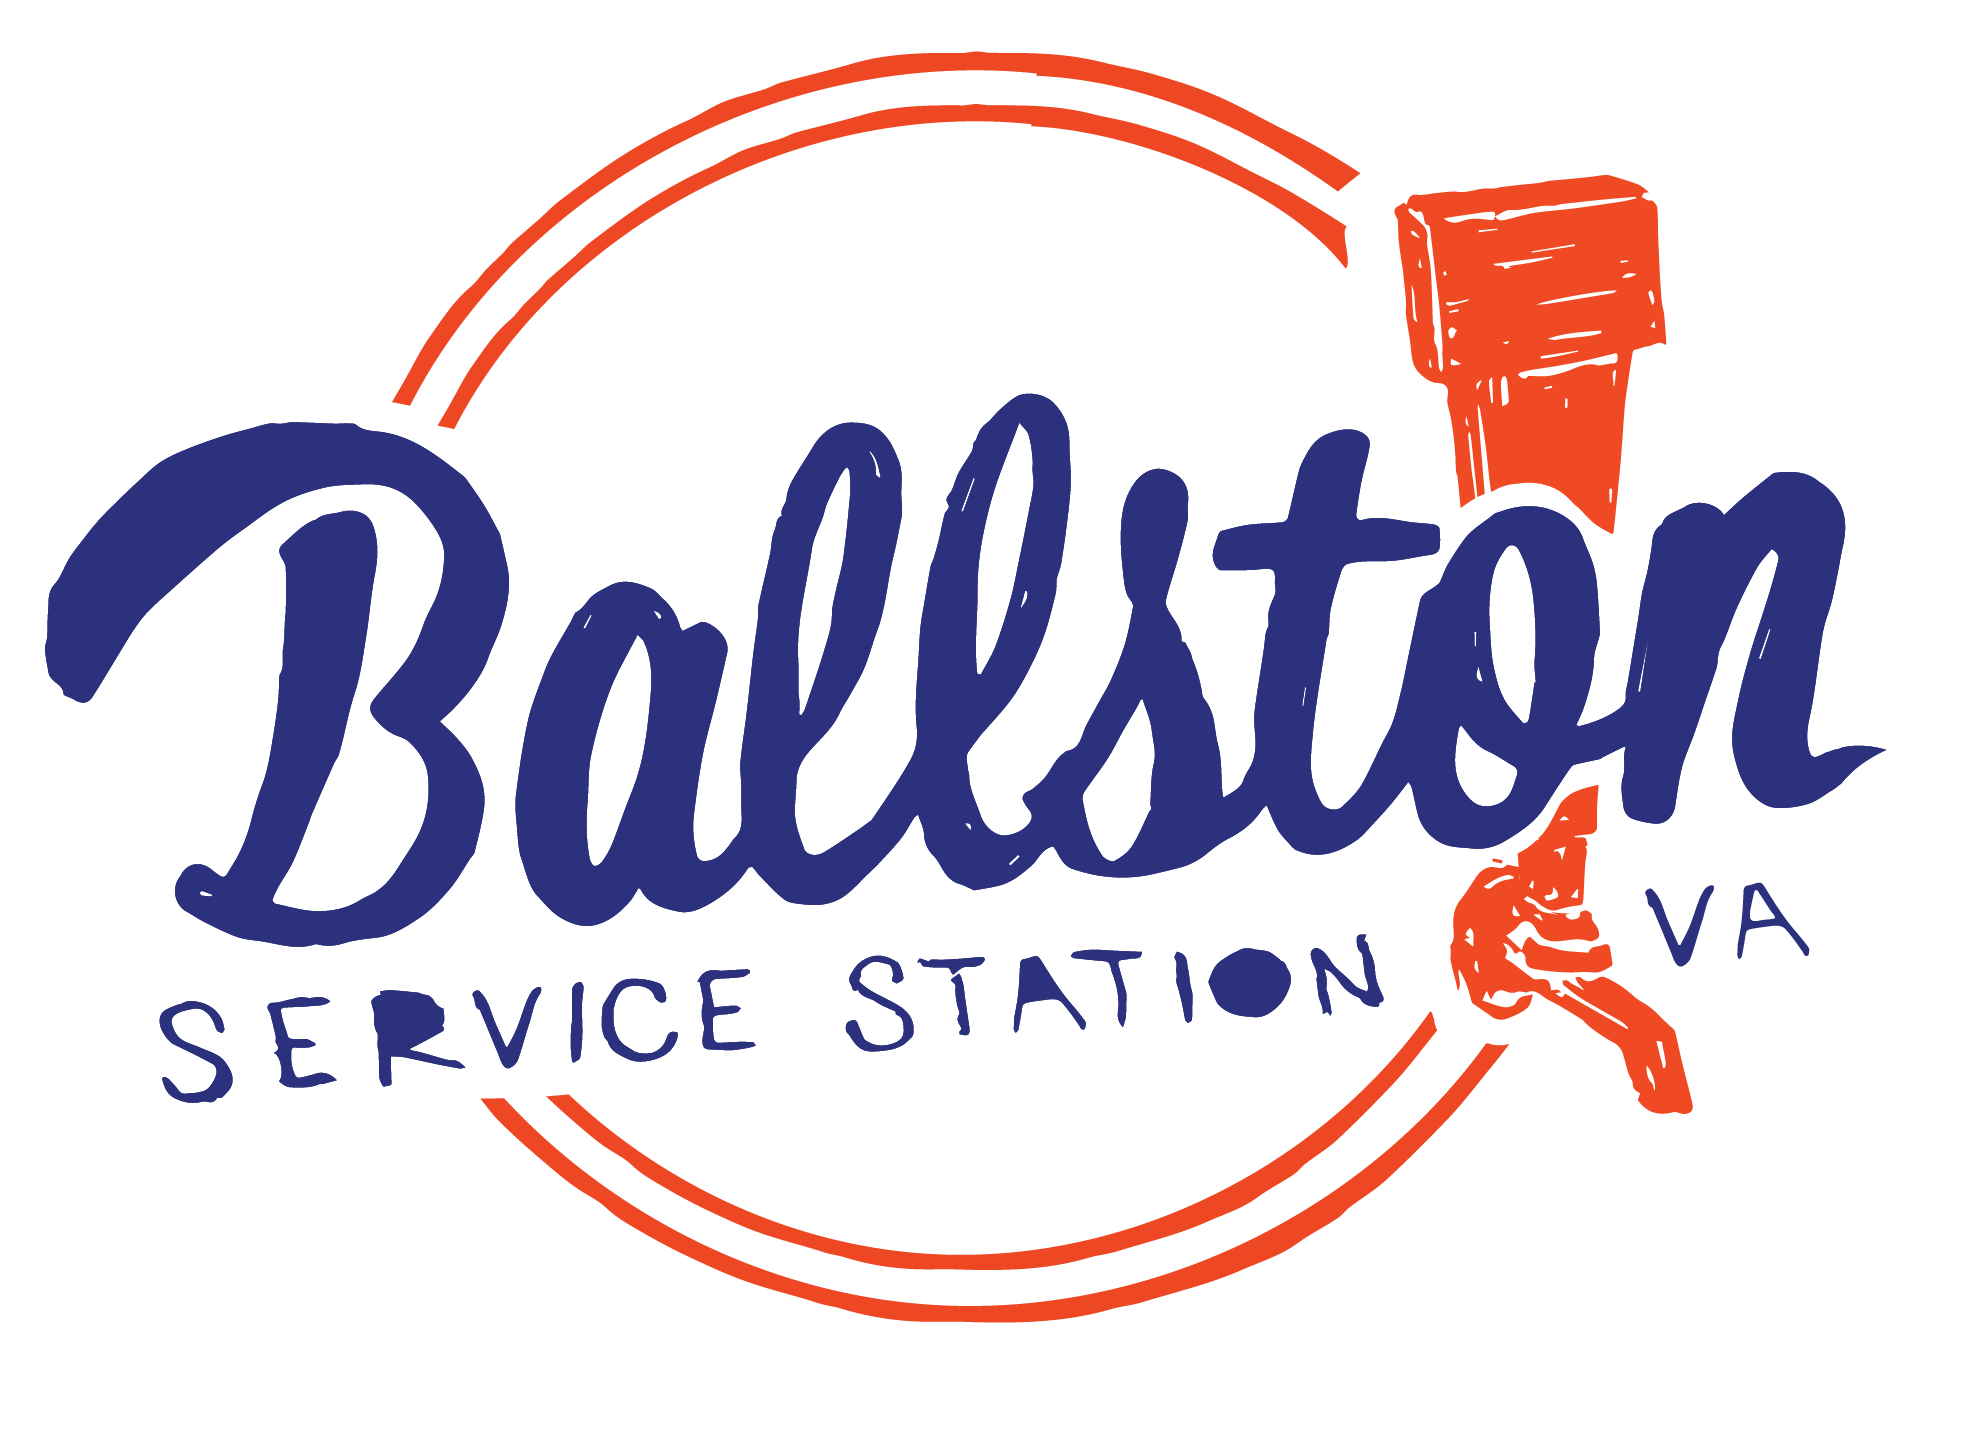 Ballston Sevice Station